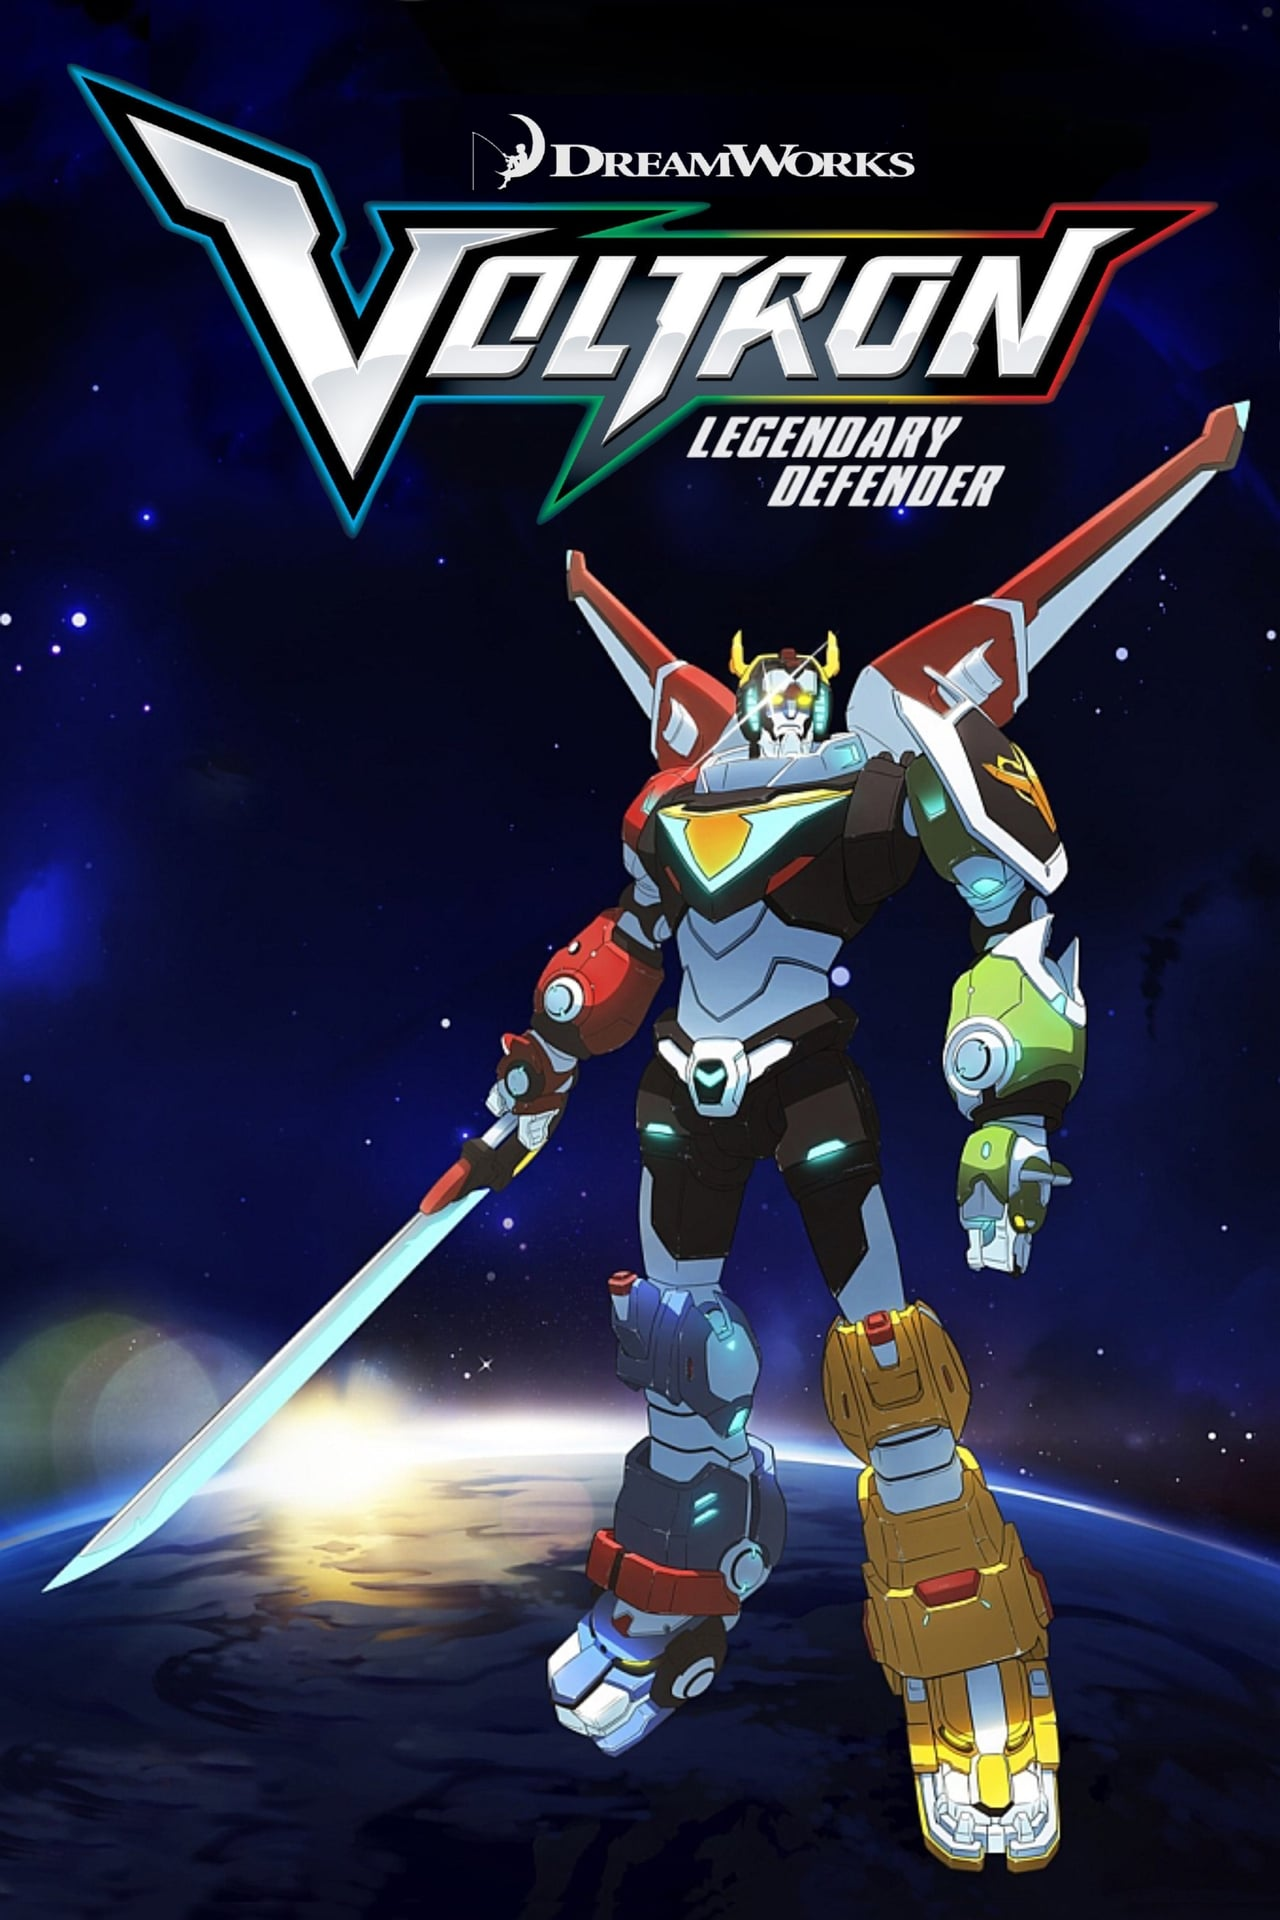 Putlocker Voltron: Legendary Defender Season 7 (2018)